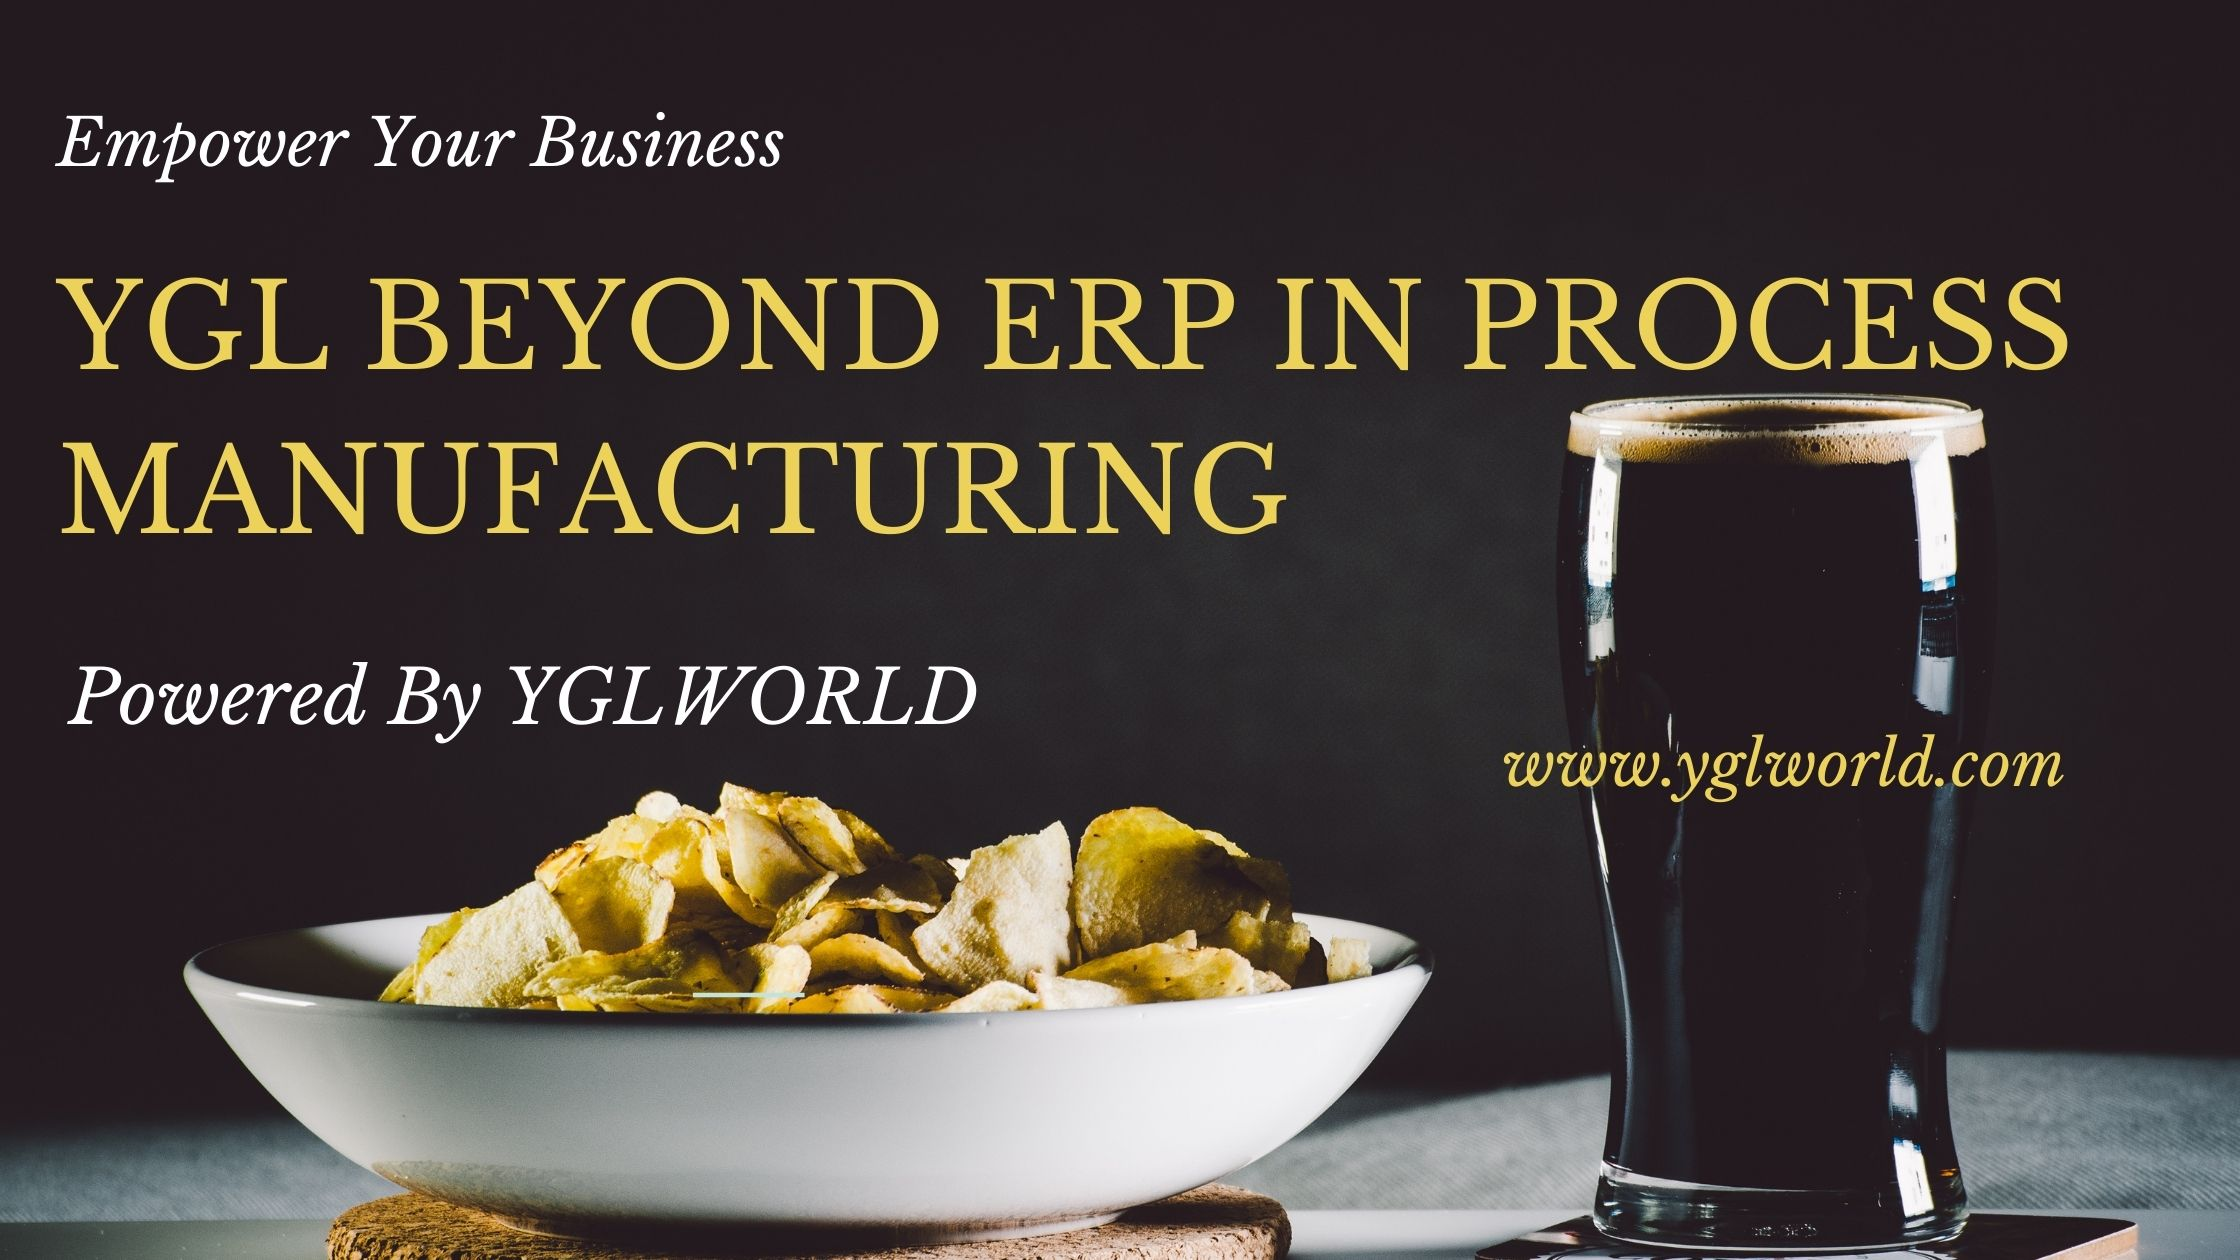 Process Manufacturing ERP Software | ERP in Process Manufacturing